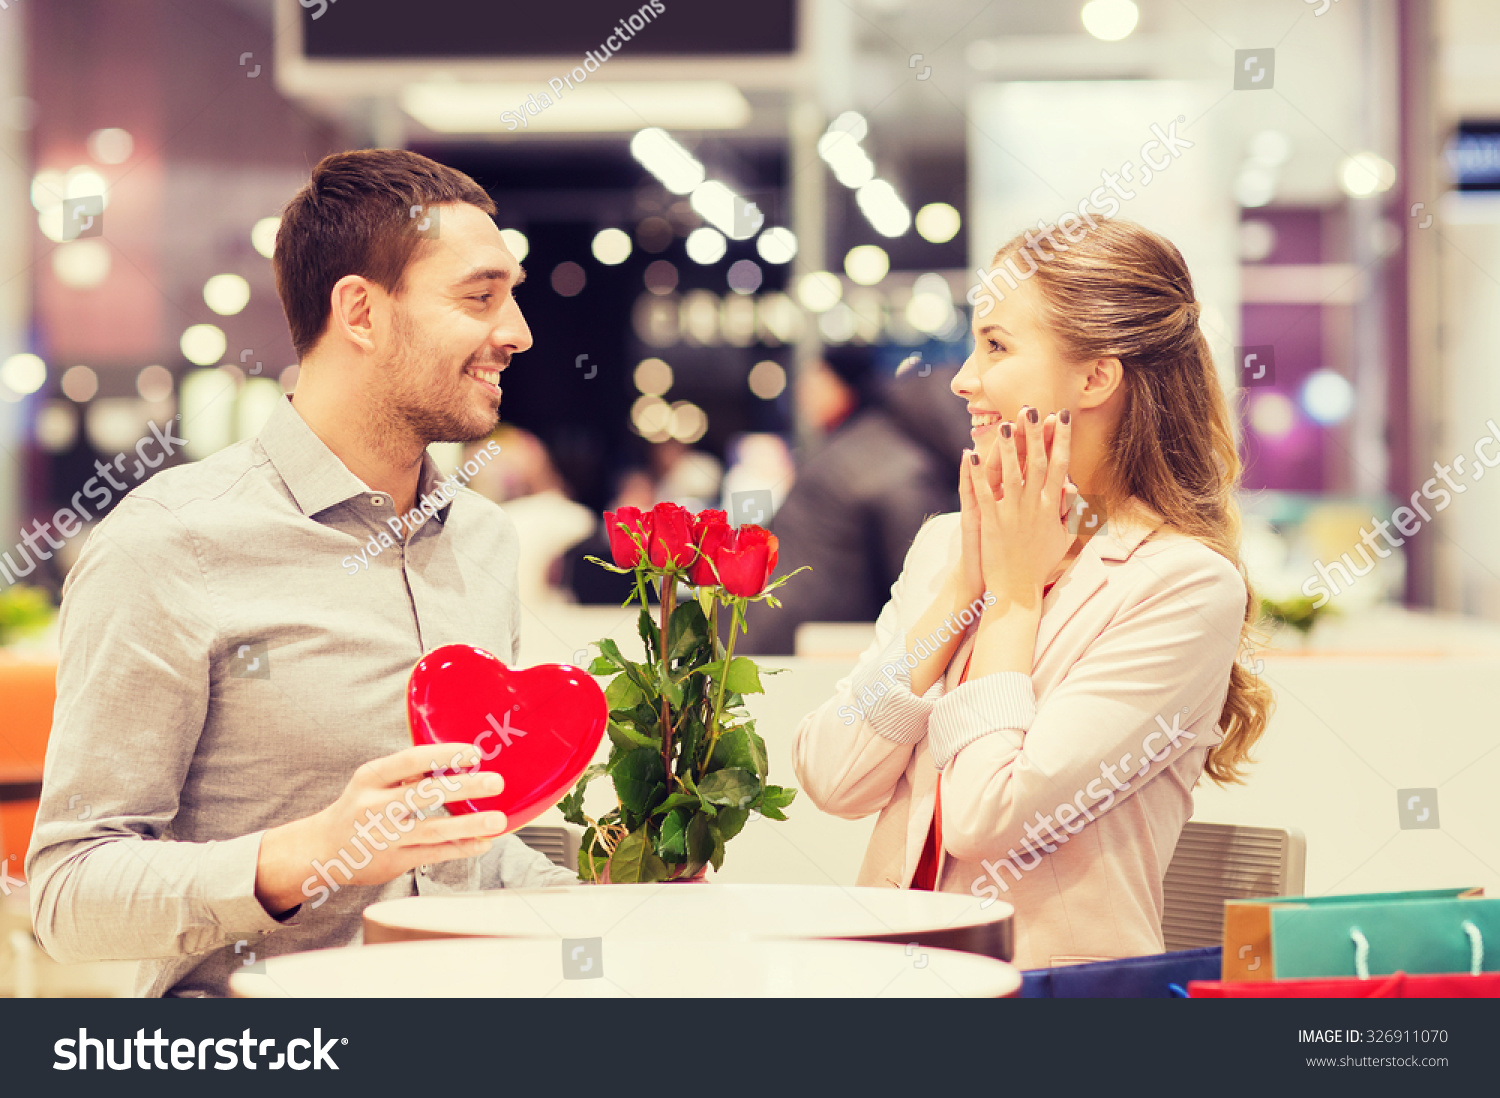 Love Romance Valentines Day Couple People Stock Photo